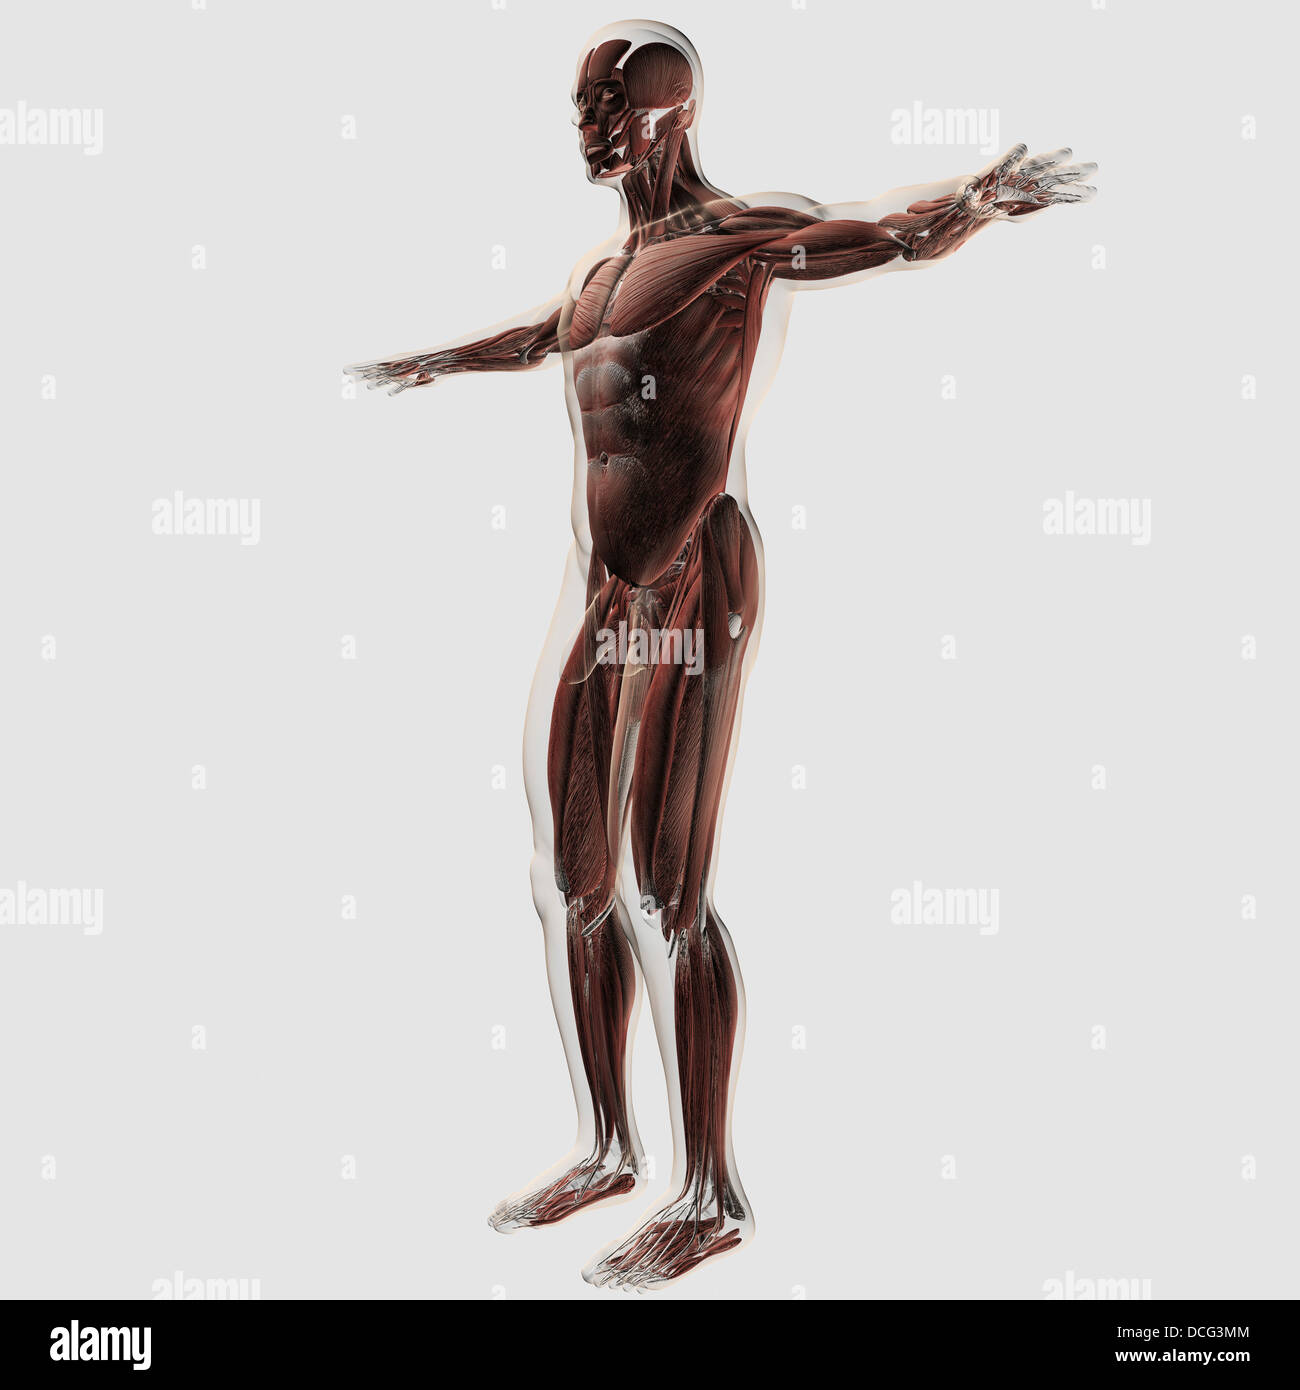 Anatomy Of Male Muscular System Side View Stock Photo 59361140 Alamy